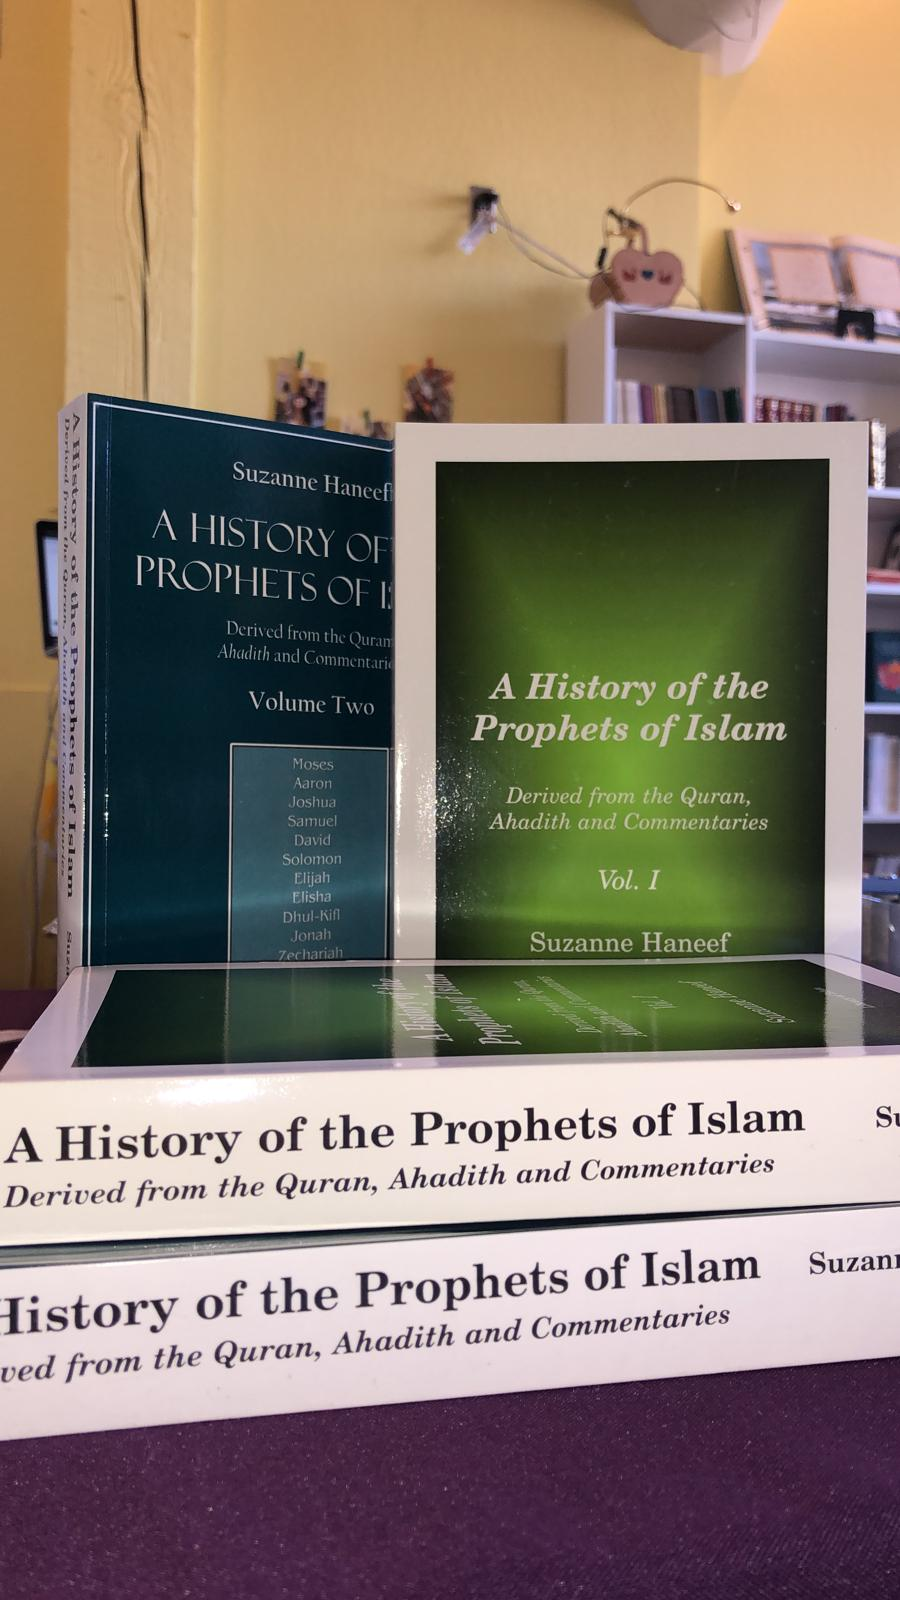 A History of the Prophets of Islam: Derived from the Quran, Ahadith and Commentaries (Vol 1 & 2 SET) INTERNATIONAL SHIPPING ONLY